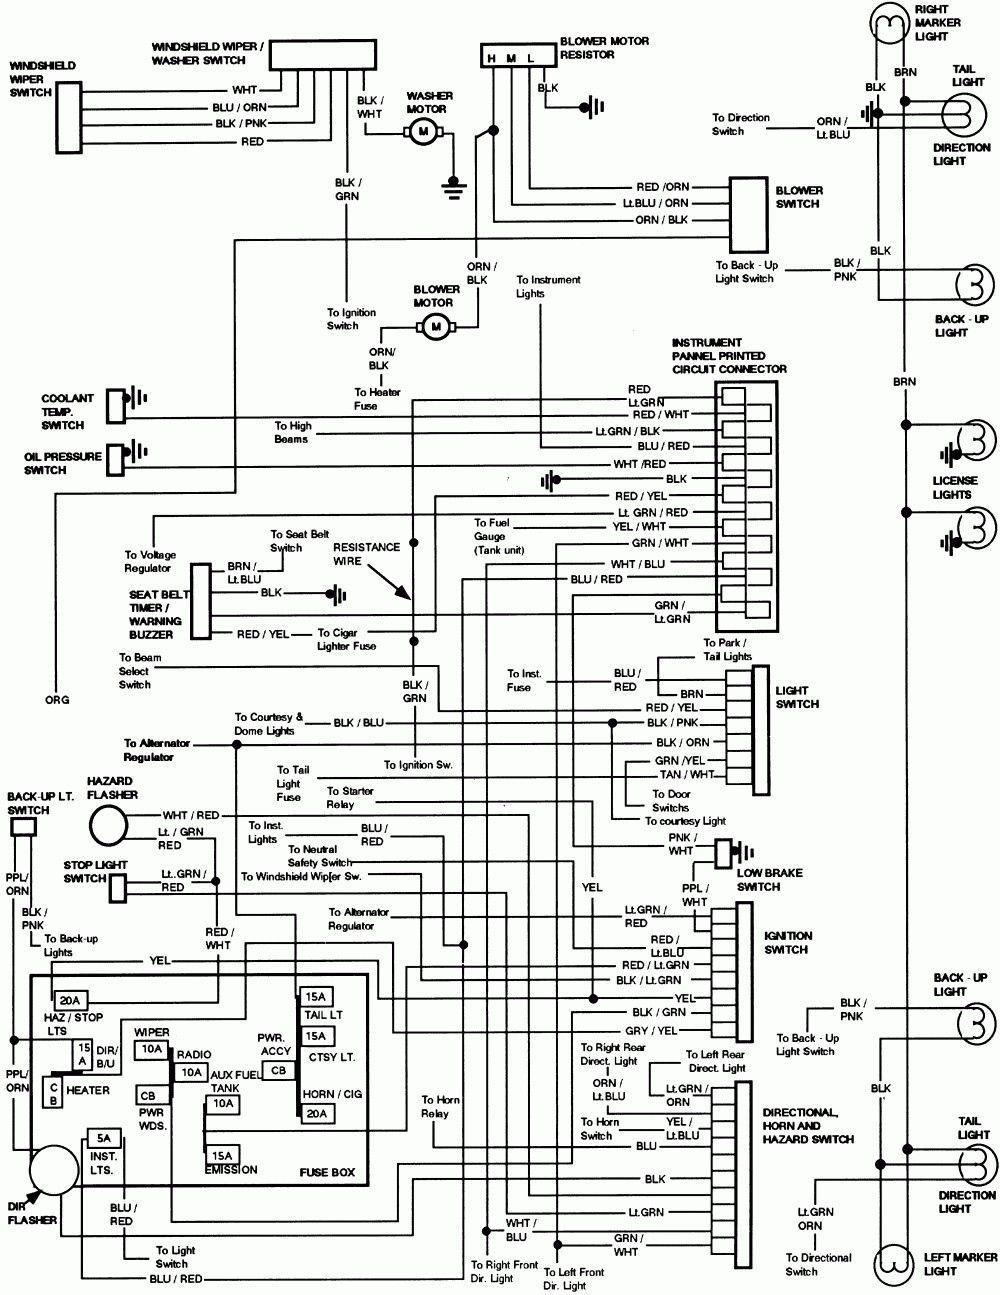 2010 Dodge Charger Wiring Diagram Wiring Diagram Library Schematic Wiring Diagram In 2020 Ford F150 Diagram Design Trailer Wiring Diagram